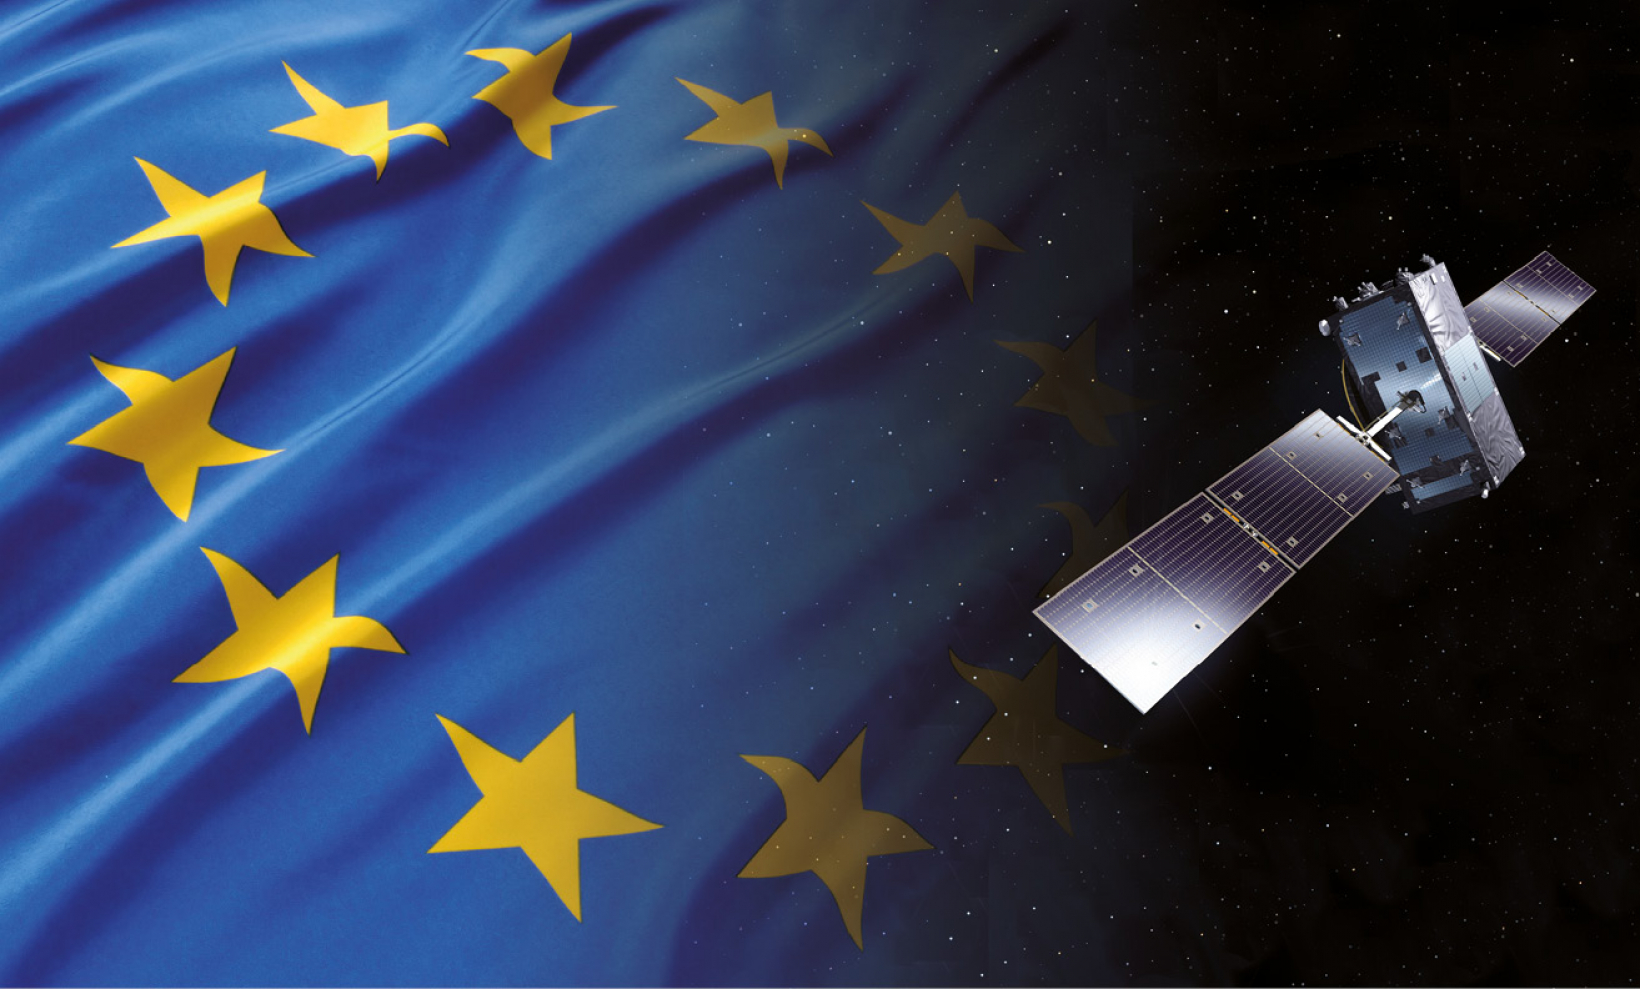 The commissioning of the four latest Galileo satellites will result in better services to end users